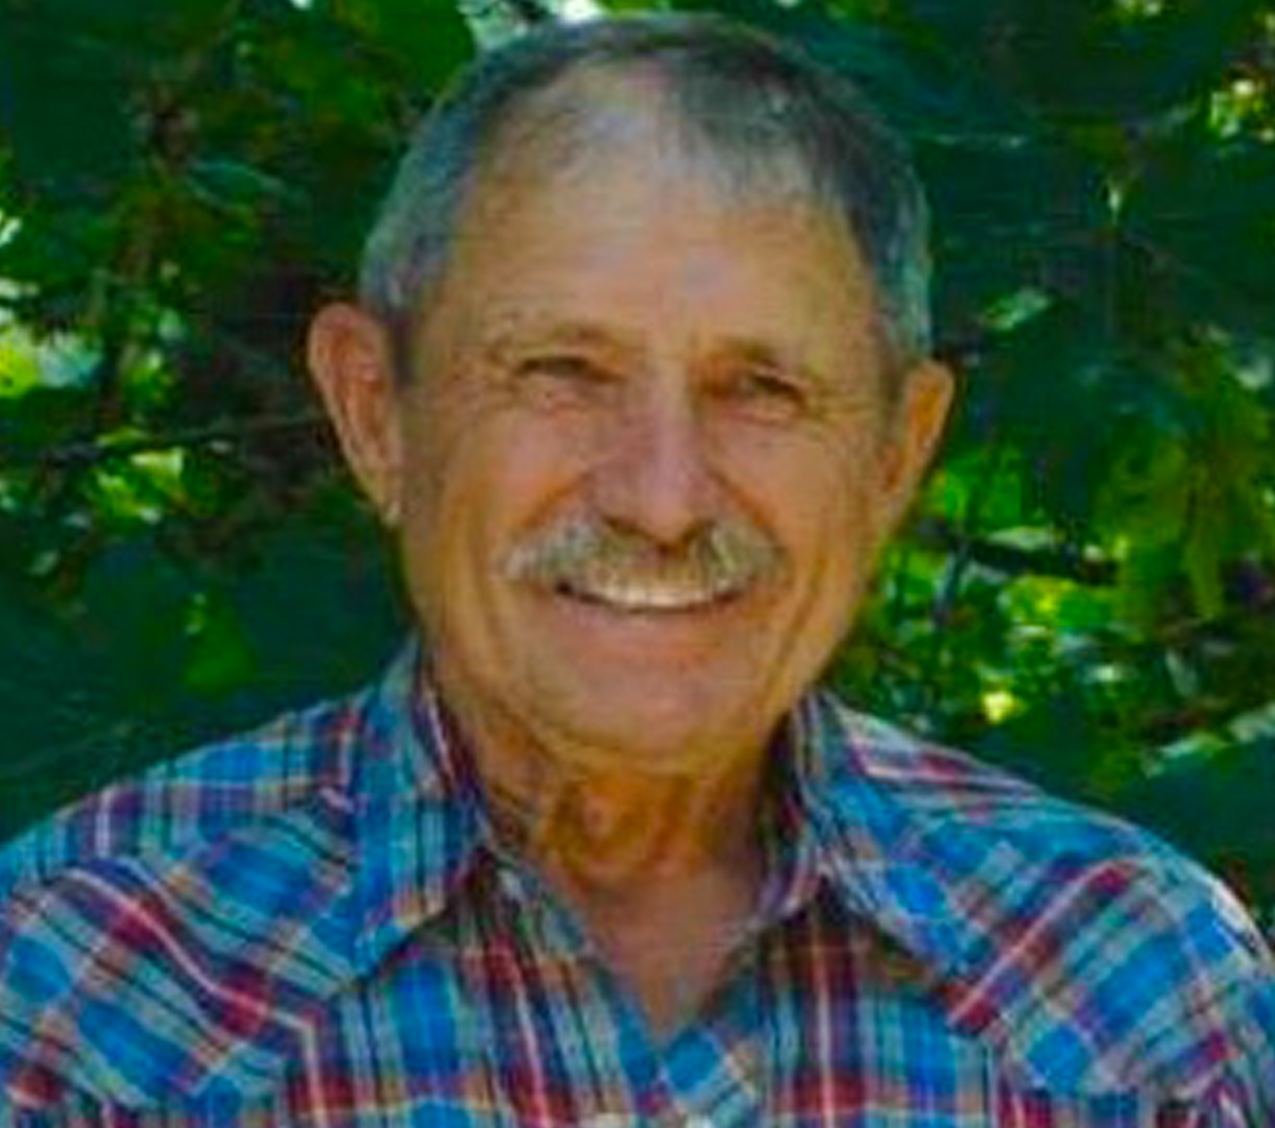 Remembering Daniel Phillip Choate | Woodlawn Funeral Home